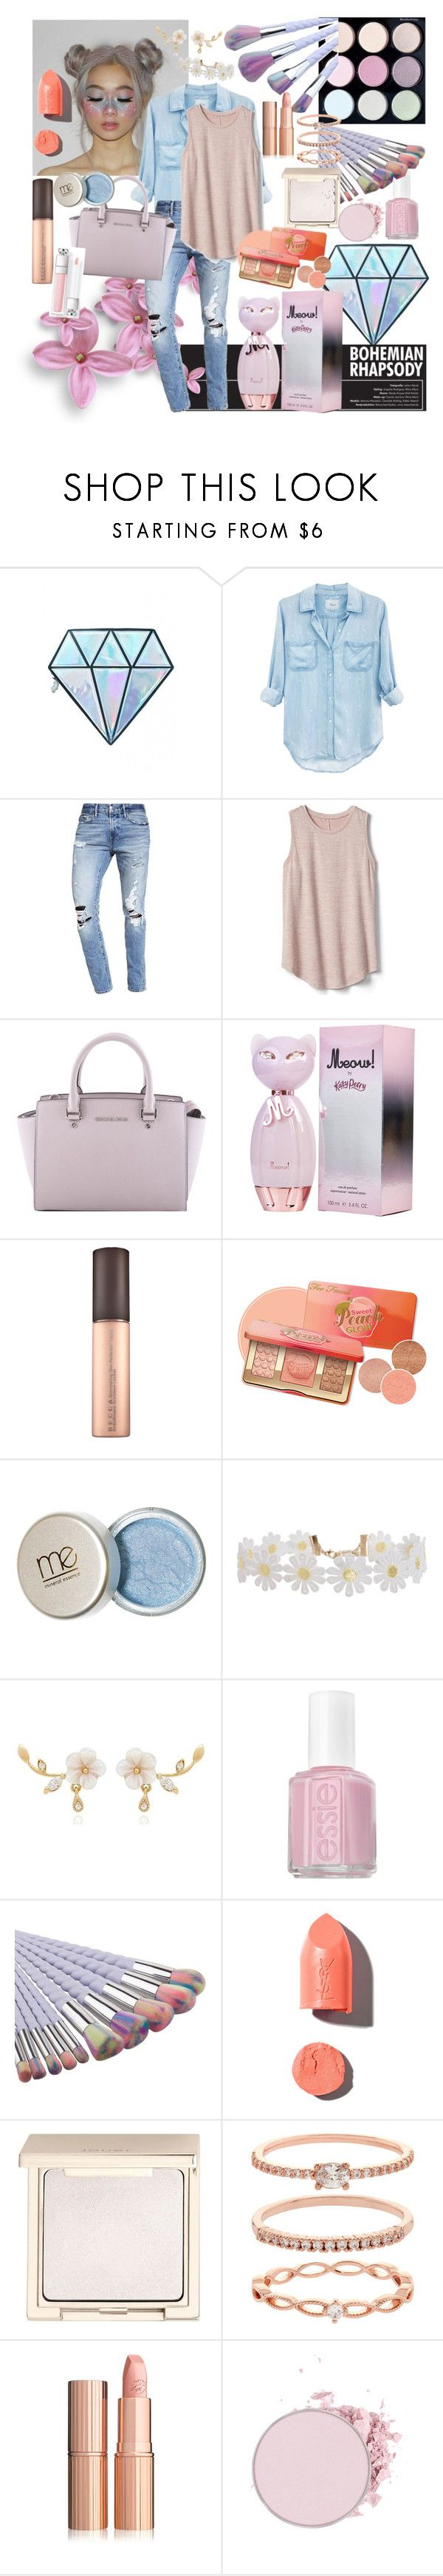 """""""love the pretty colors in spring"""" by rozigurl-rb ❤ liked on Polyvore featuring Unicorn Lashes, Rails, Abercrombie & Fitch, Gap, MICHAEL Michael Kors, Humble Chic, Essie, PUR, Jouer and Accessorize"""